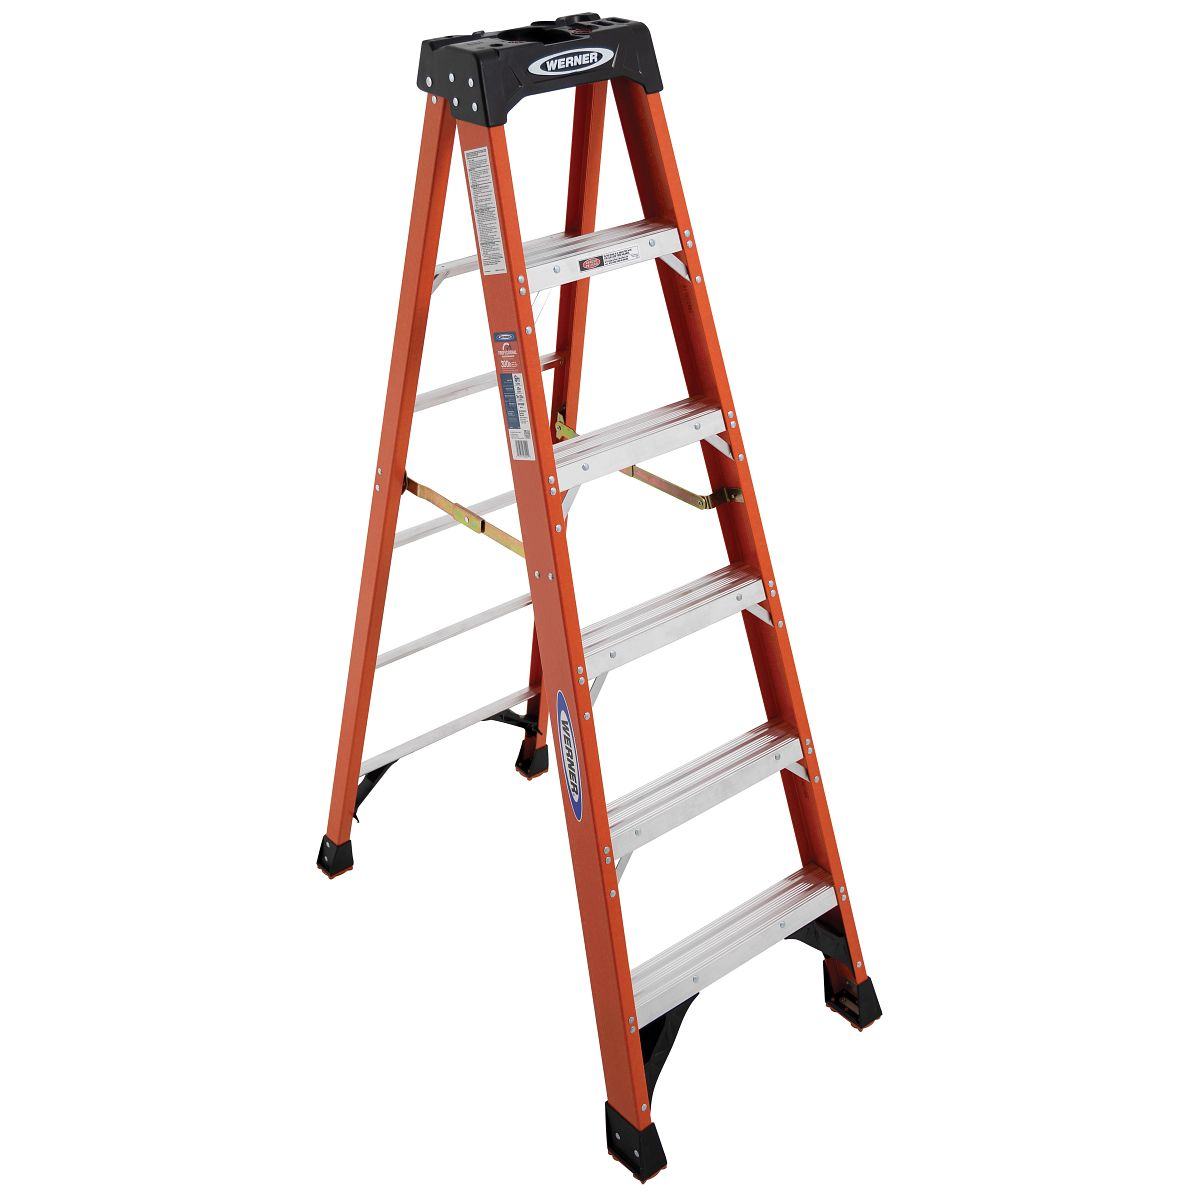 NXT1A06 | Step Ladders | Werner US